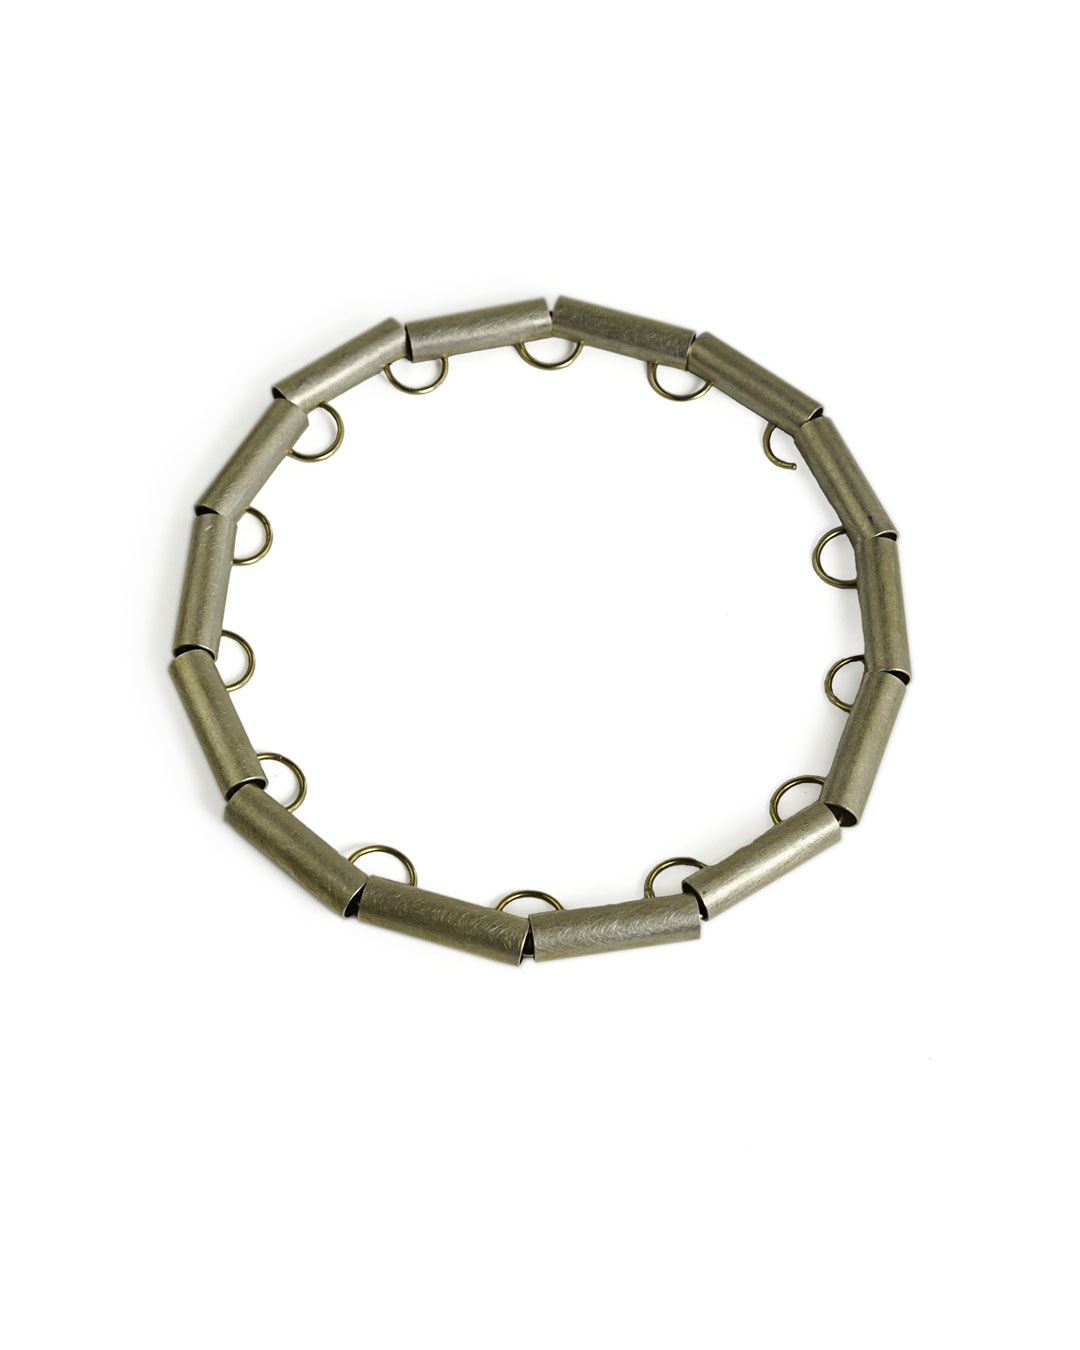 Herman Hermsen, untitled, 1998, necklace; silver, gold, 170 x 170 x 17 mm, €2560